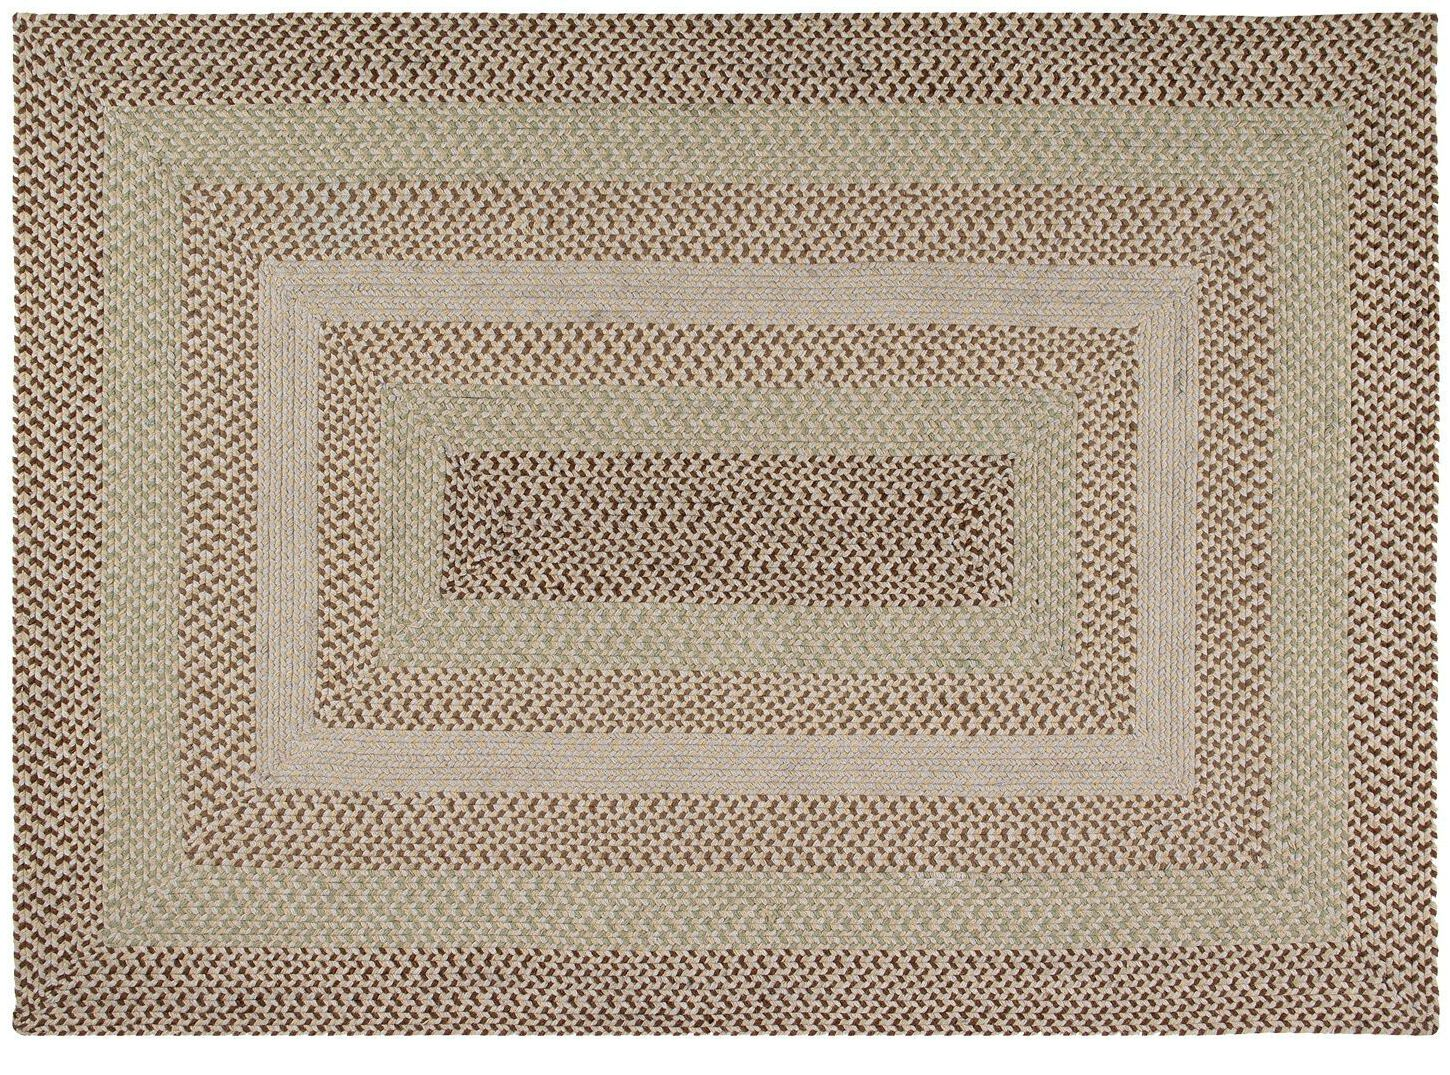 Monnie Natural Area Rug Rug Size: 6' x 9'